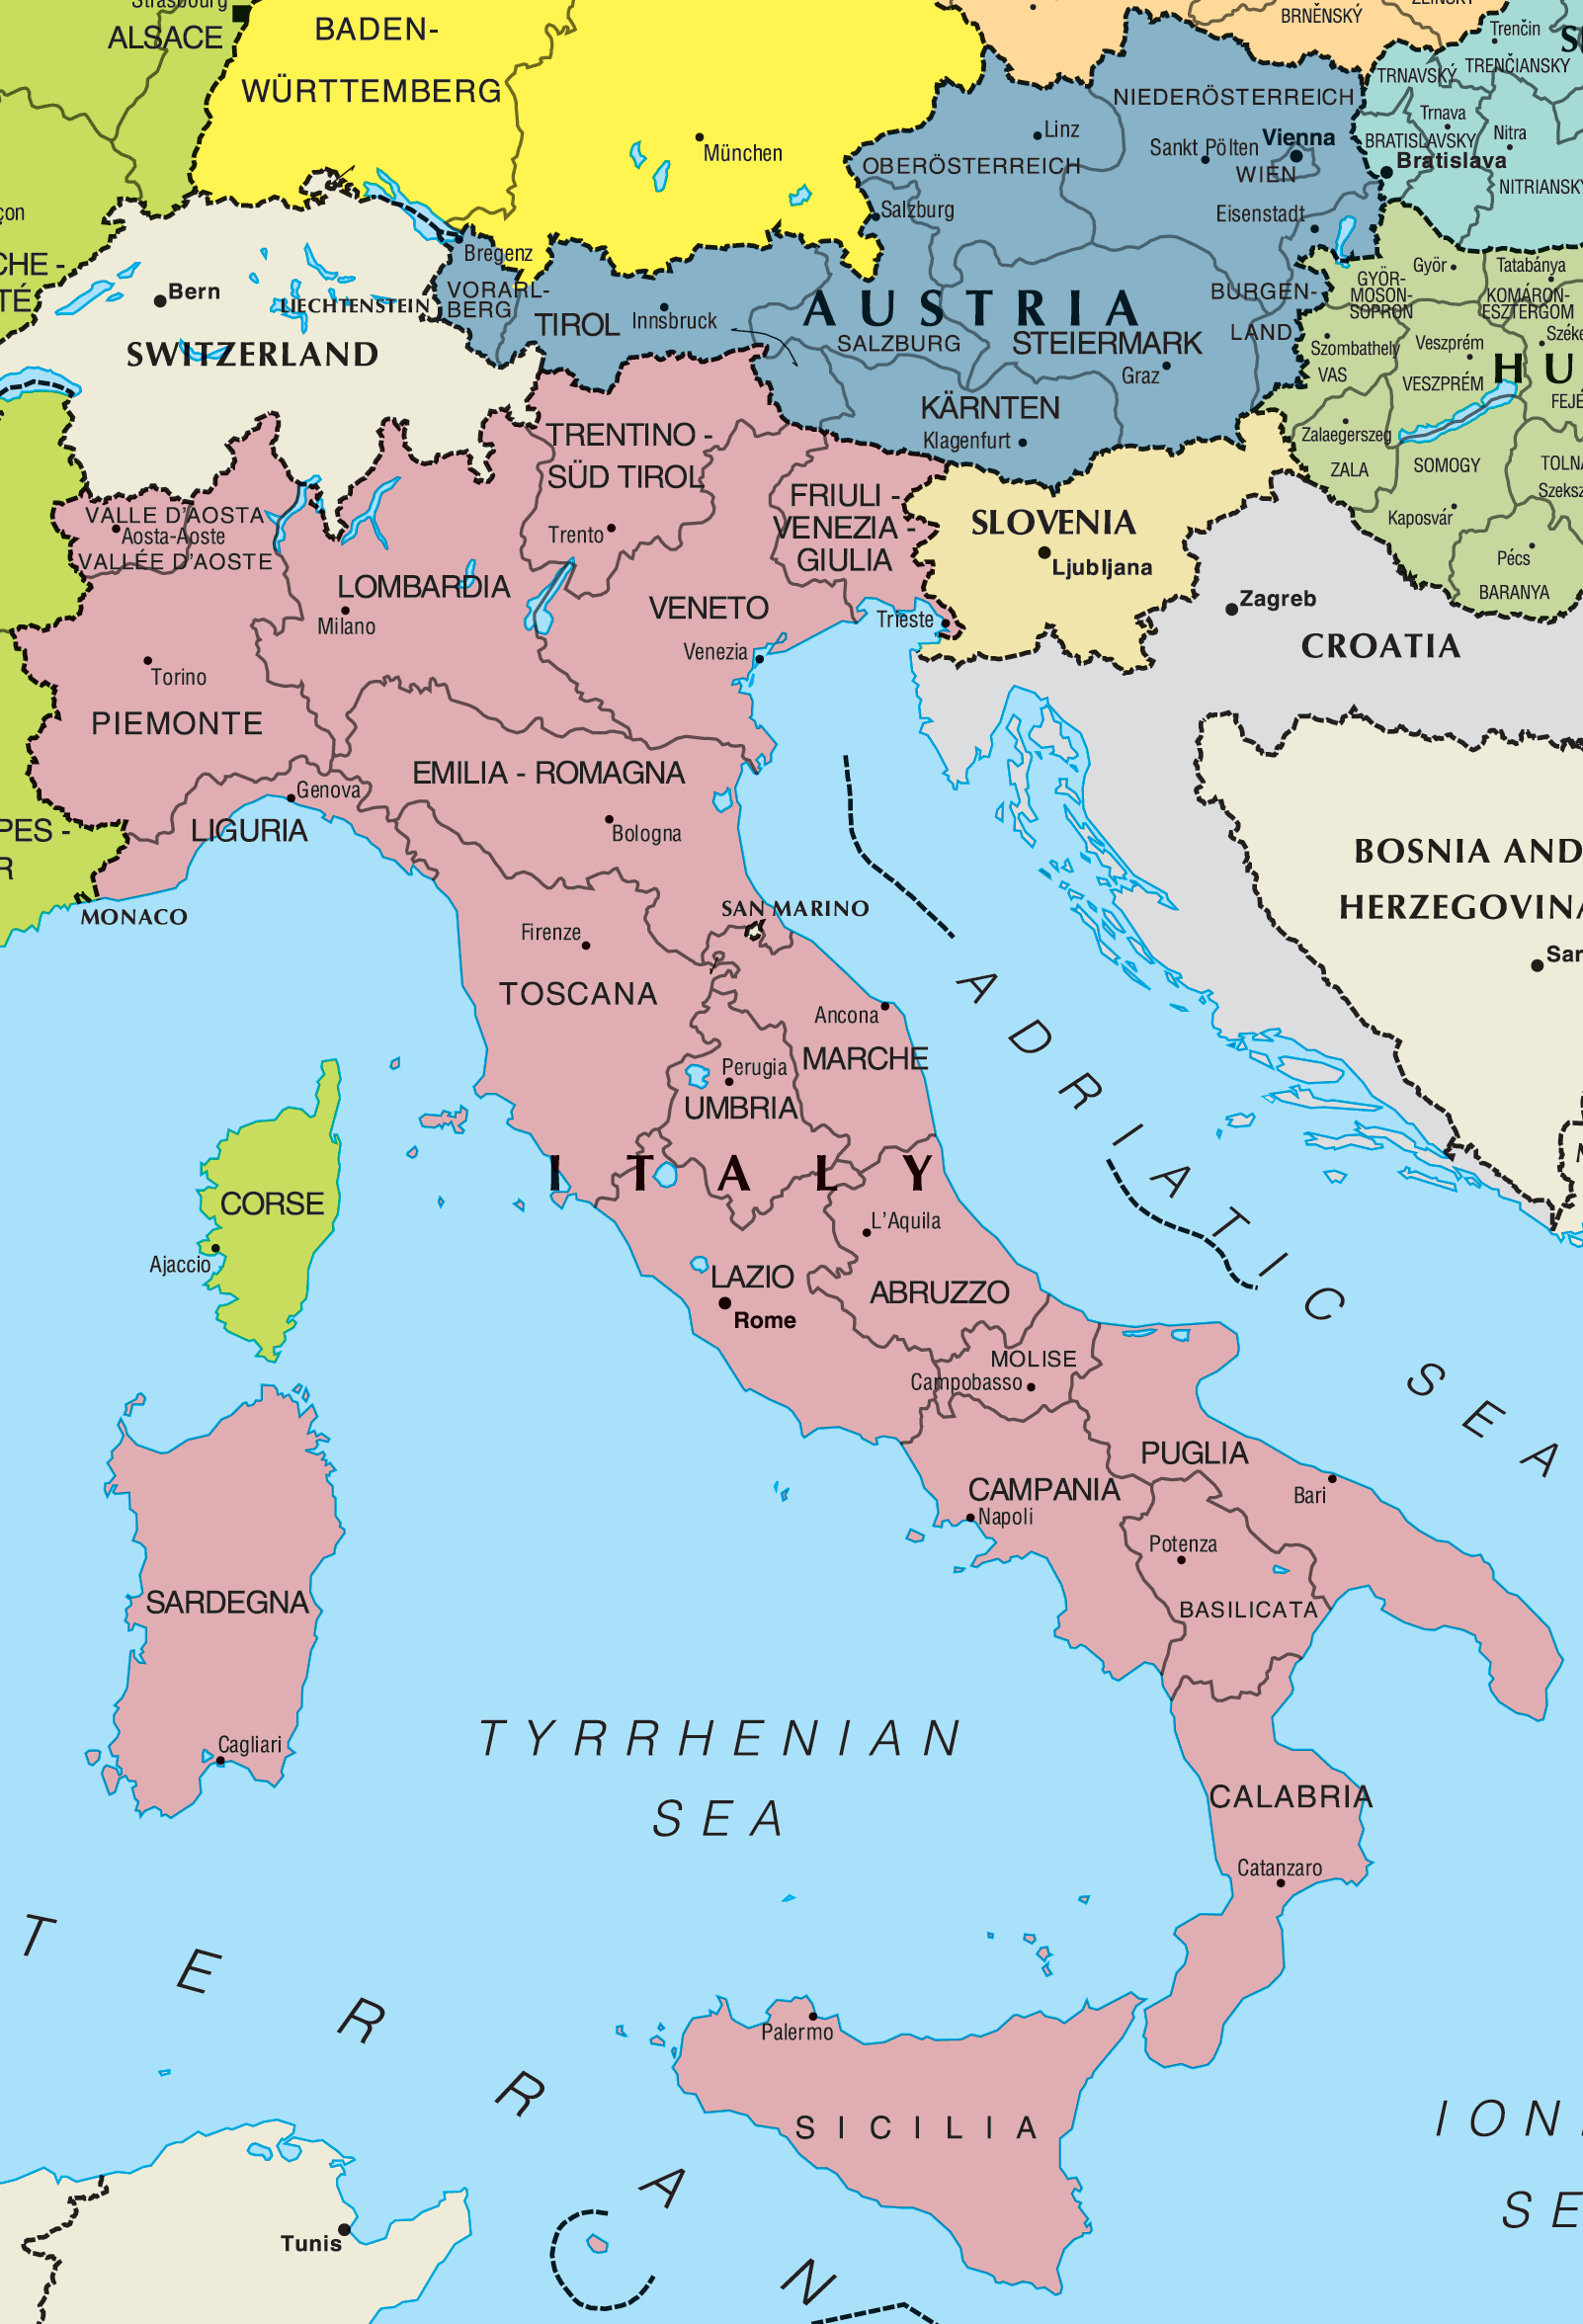 Map Of Italy And Austria With Cities.Italy And Austria Map Mapsof Net